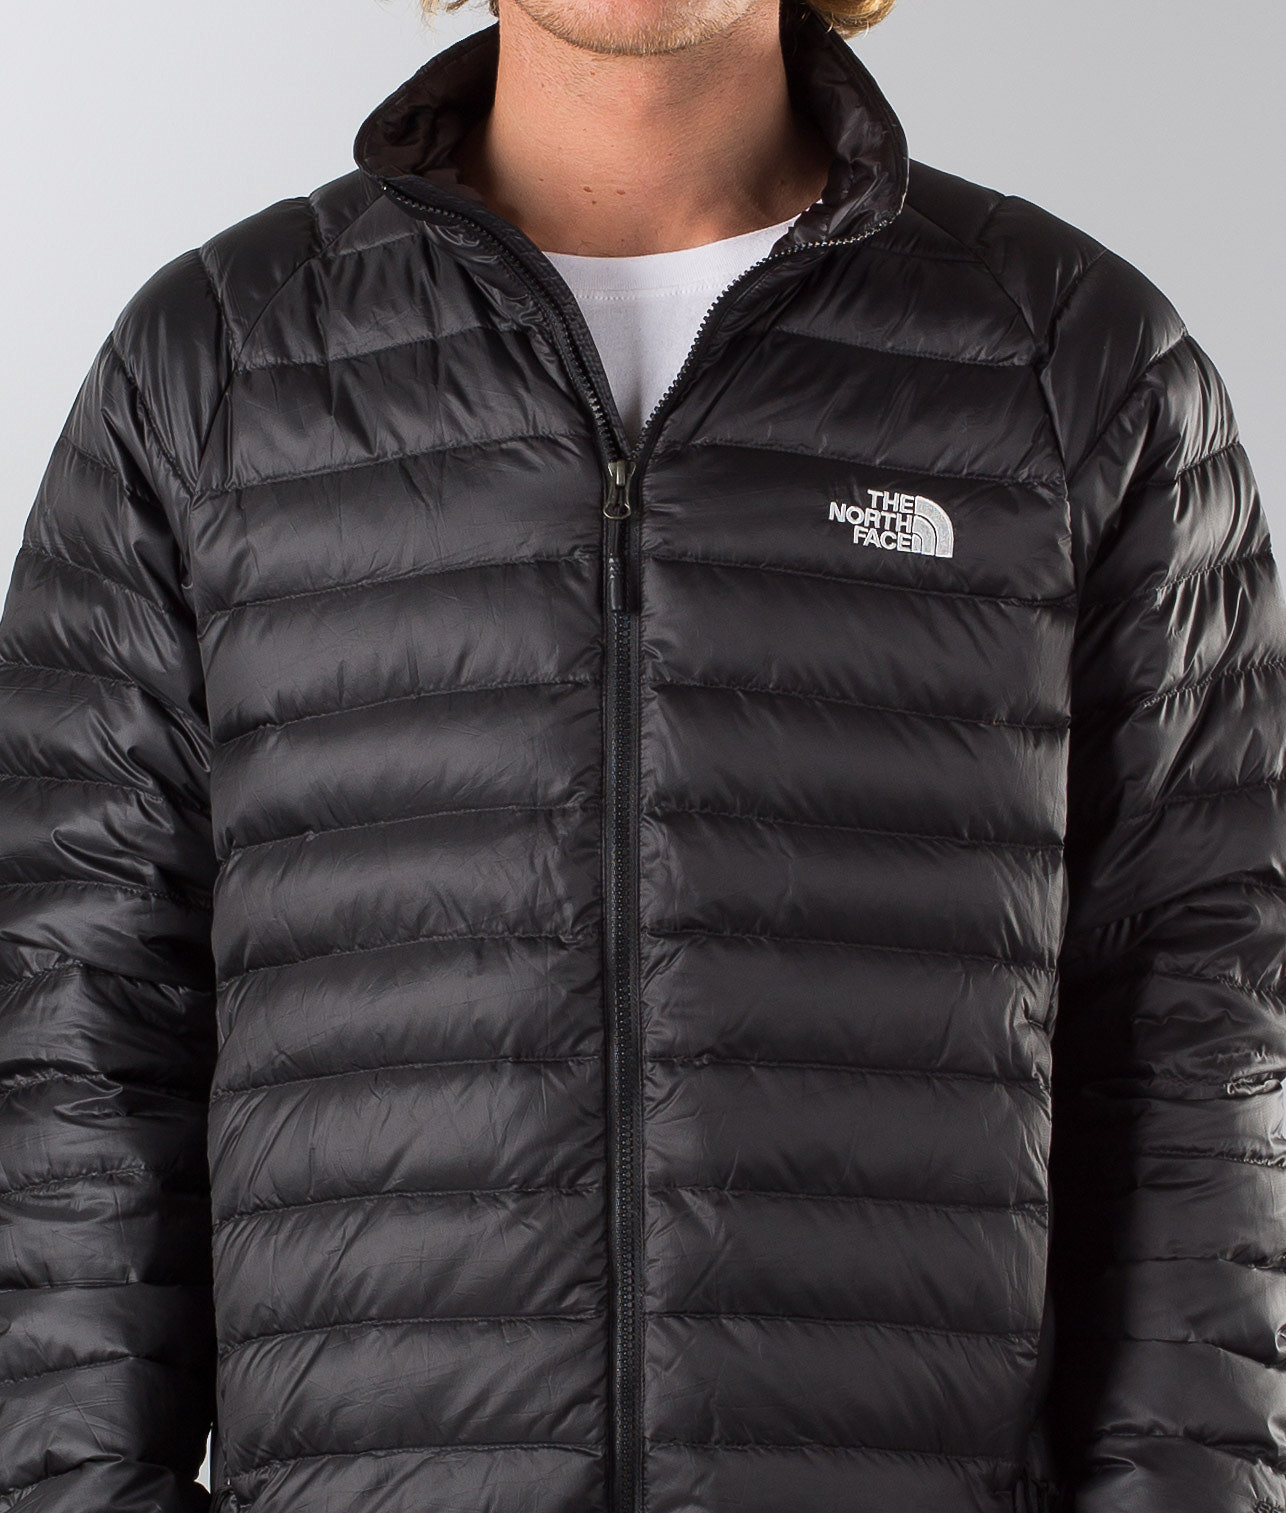 e7a5b0dbdd The North Face Trevail Jacke tnf black/tnf black - Ridestore.de